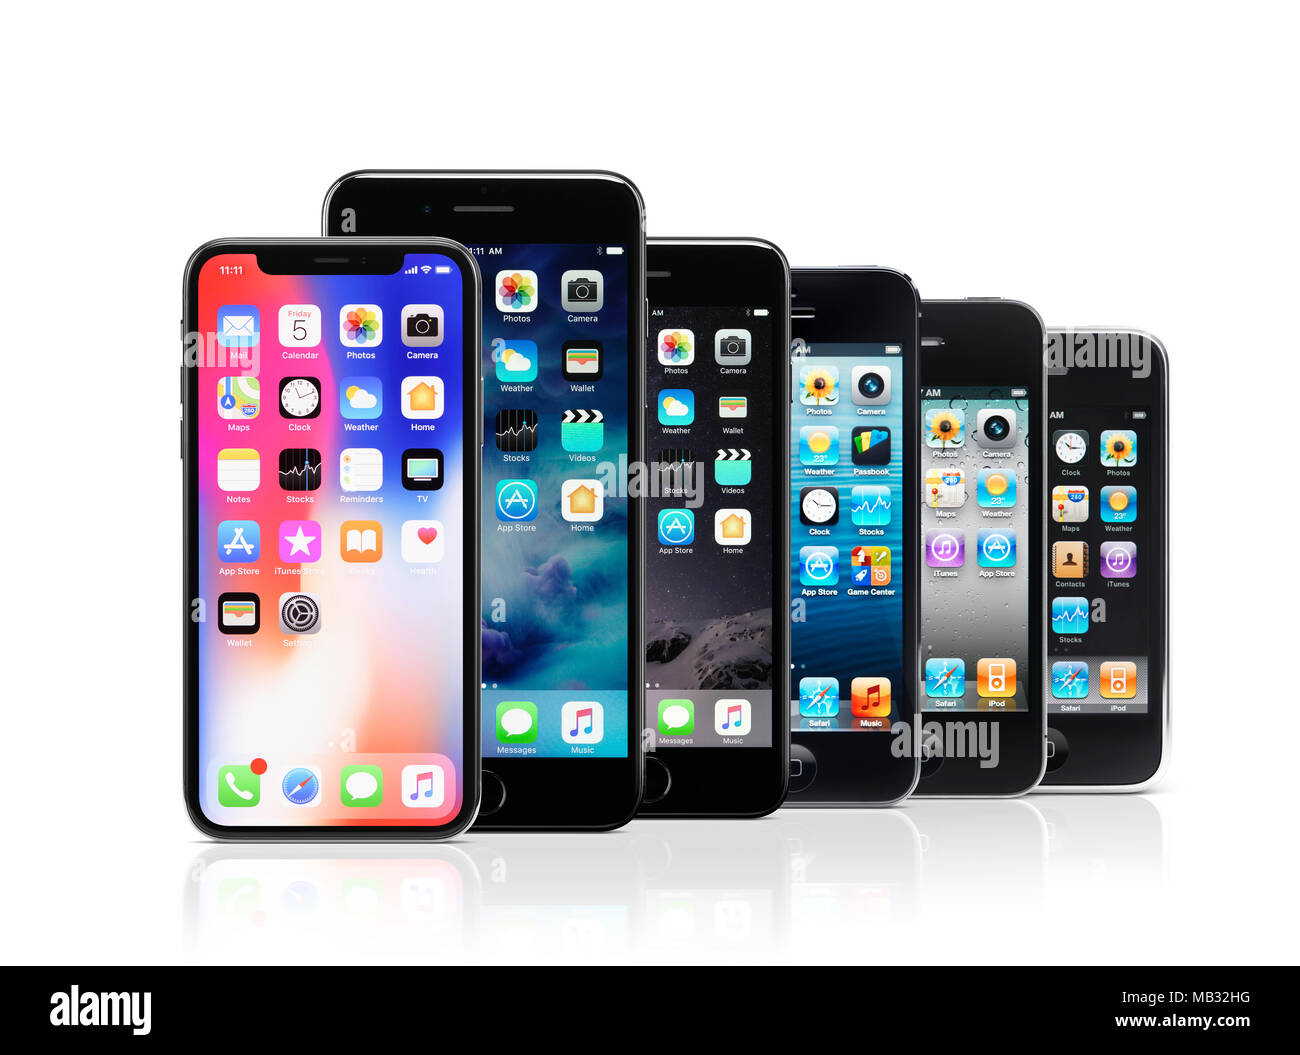 Apple iPhone line-up, iPhone X, 7 plus, 7, 5s, 4, 3, from newer to older models of previous smartphone generations Stock Photo